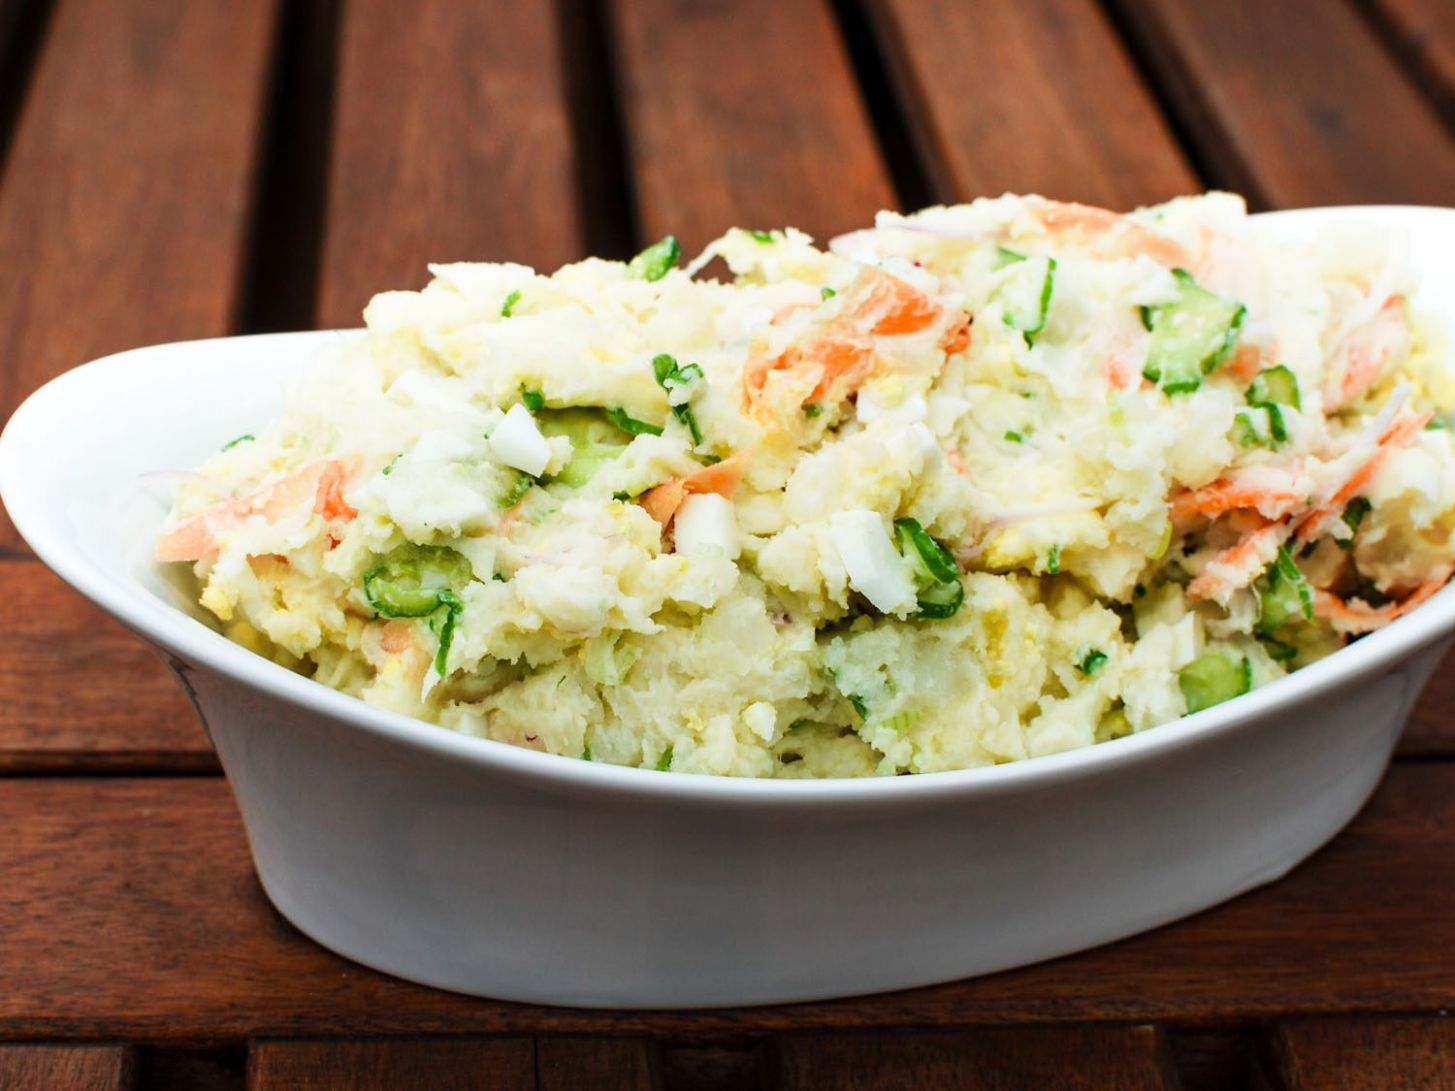 Japanese Potato Salad With Cucumbers, Carrots, and Red Onion Recipe